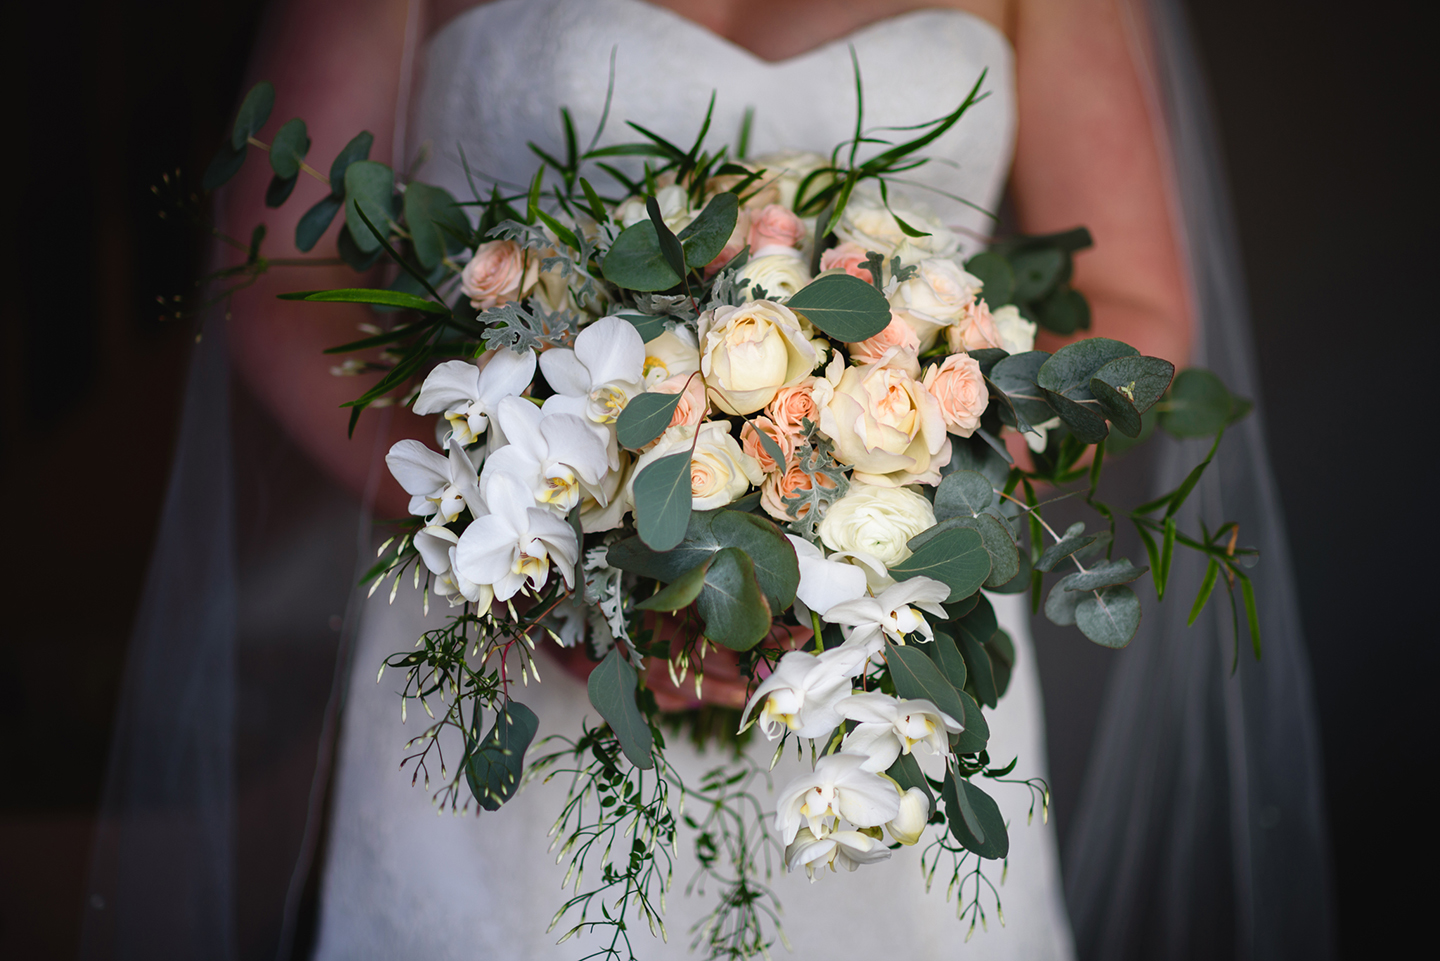 The bride holds her wedding bouquet featuring white flowers and green foliage – wedding ideas